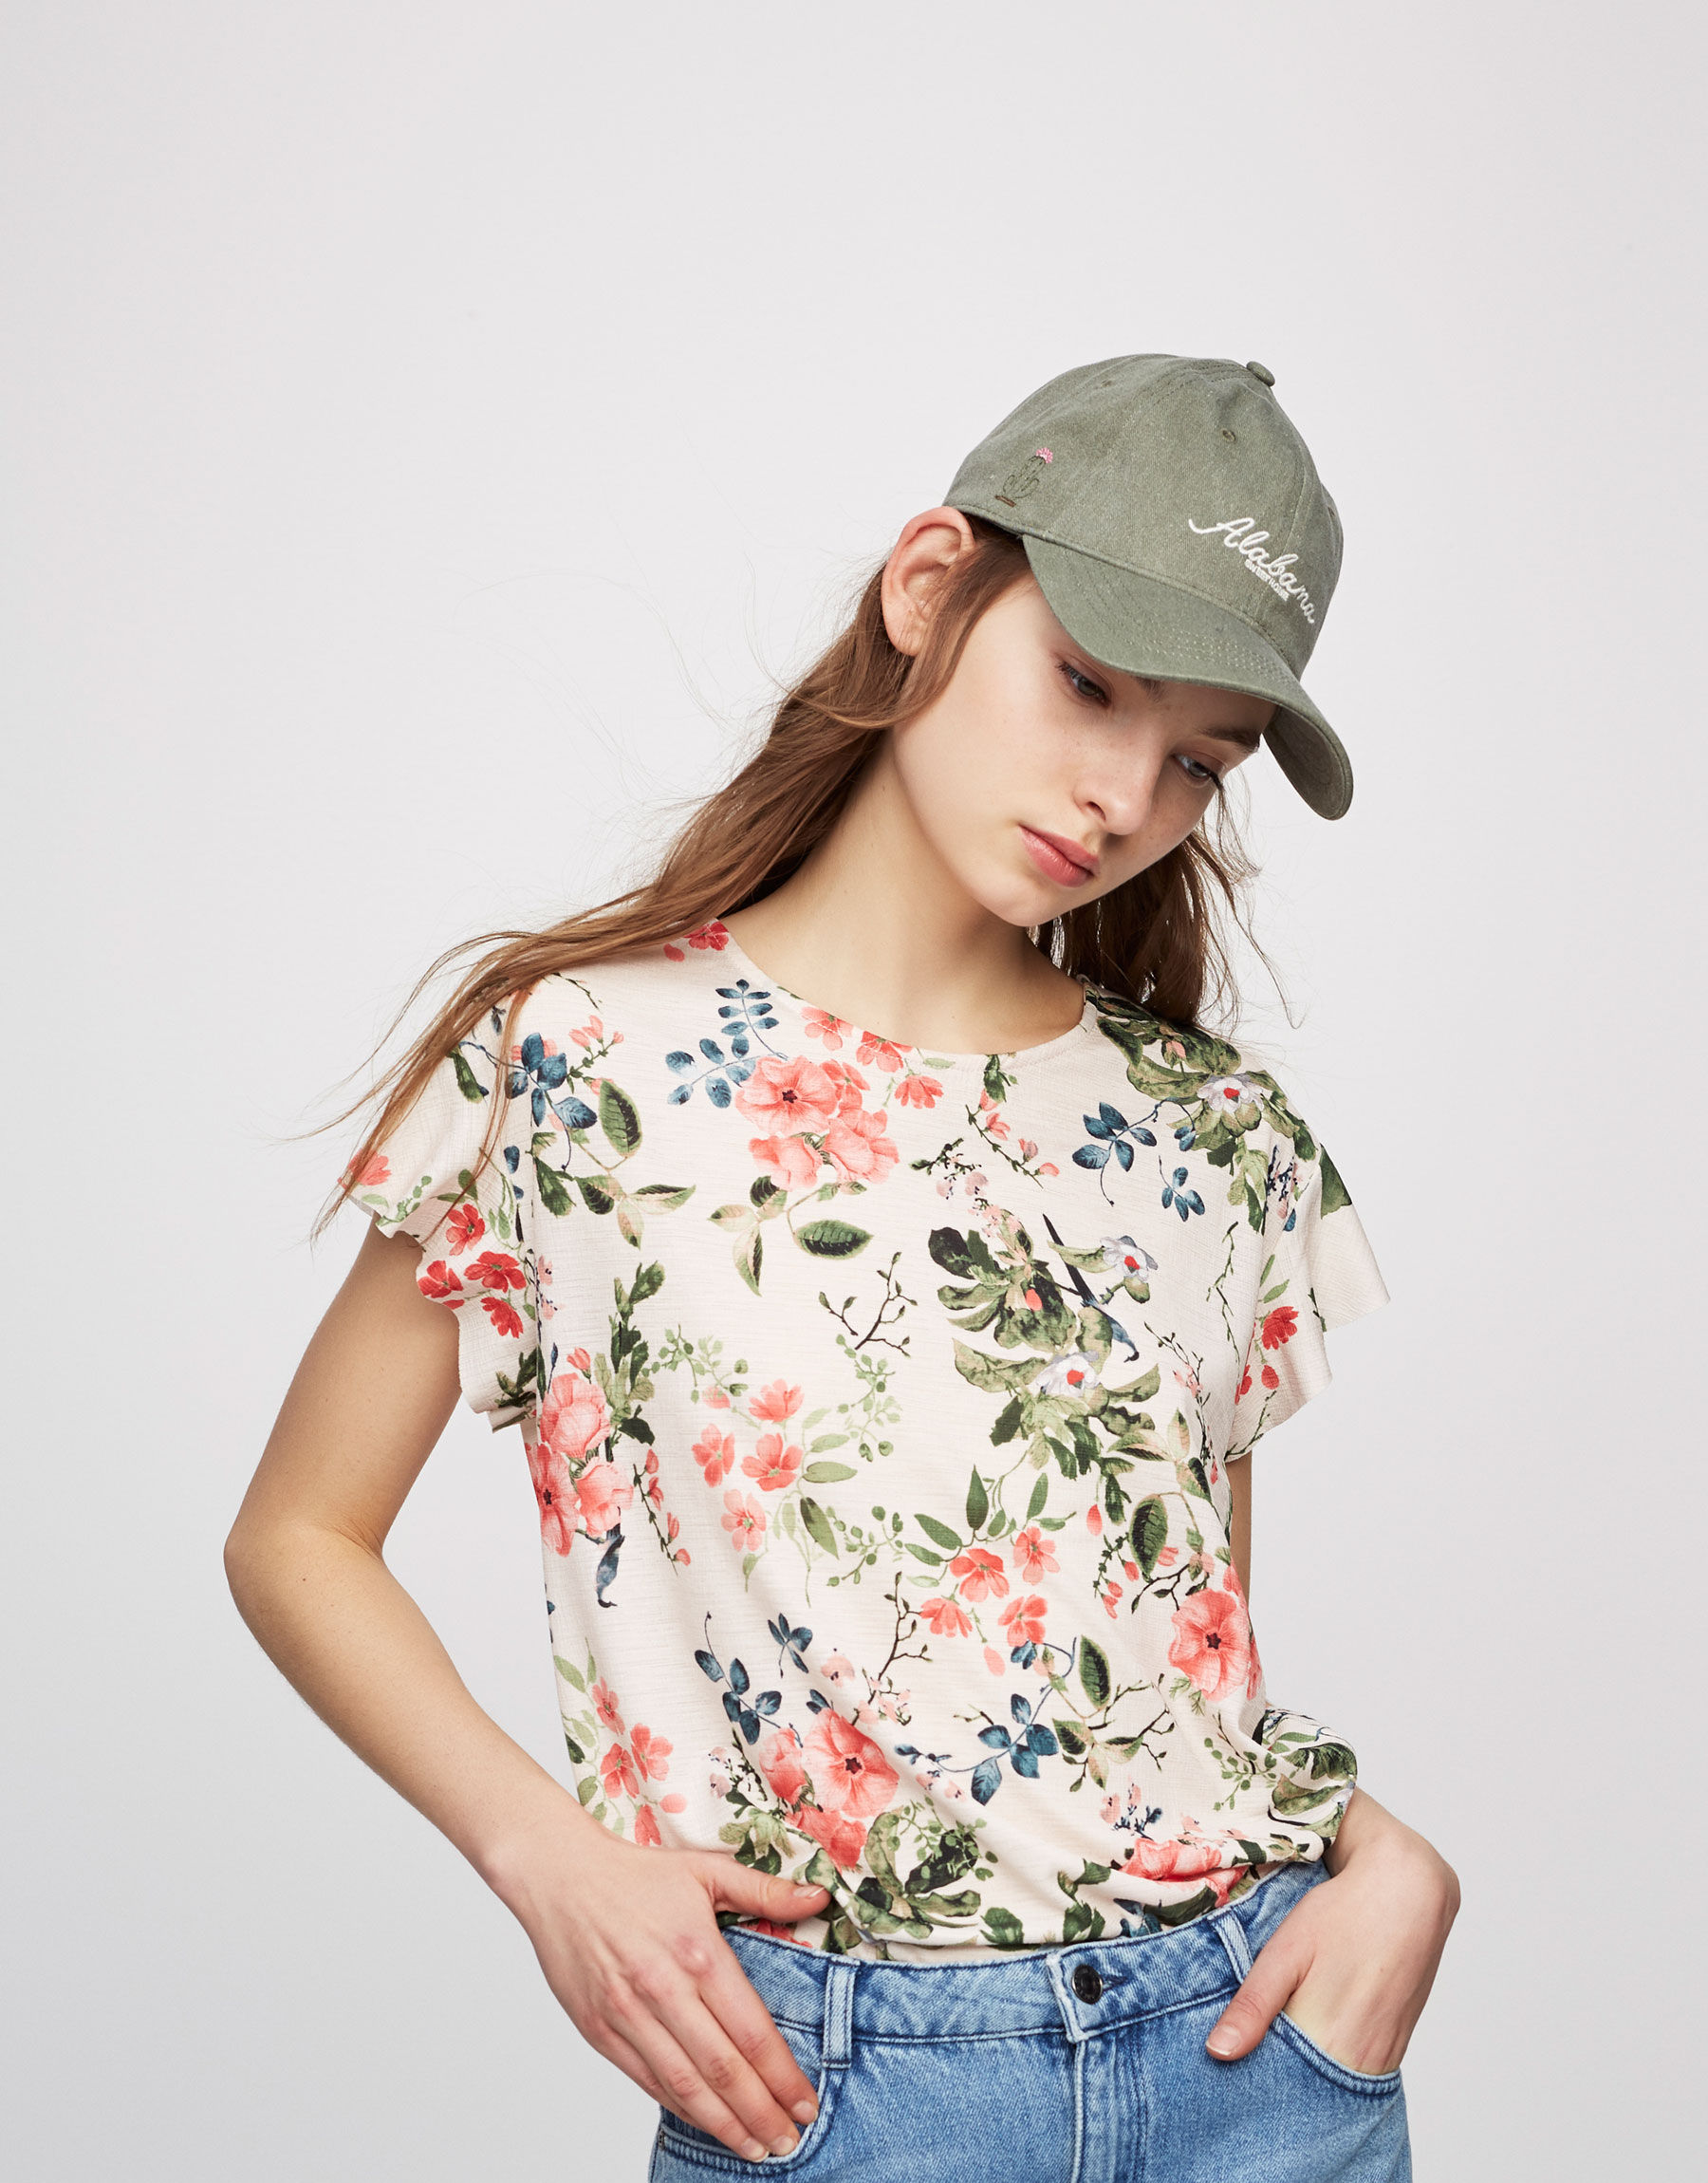 Floral print T-shirt with frills on the sleeves